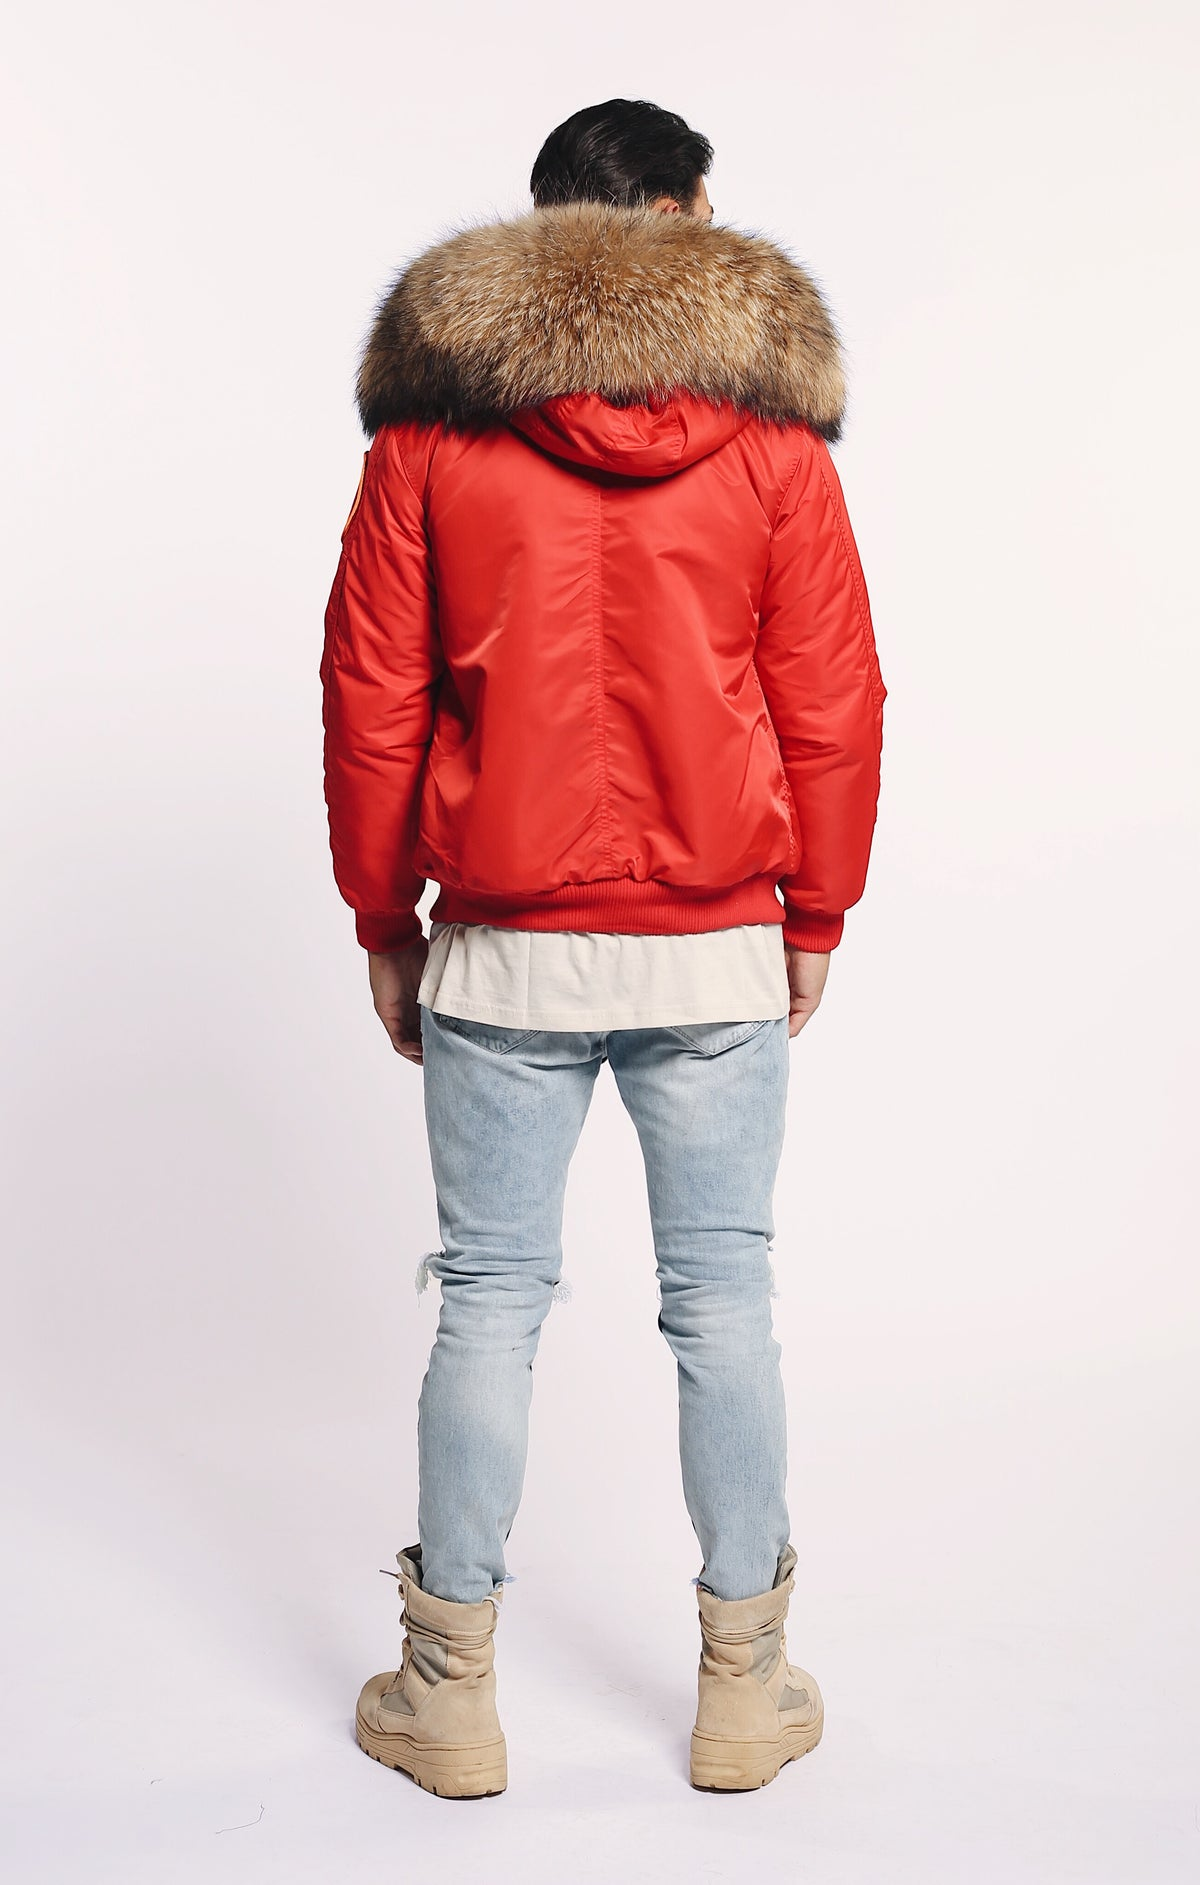 ARCTIC CLASSIC BOMBER -RED/ NATURAL - MEN'S